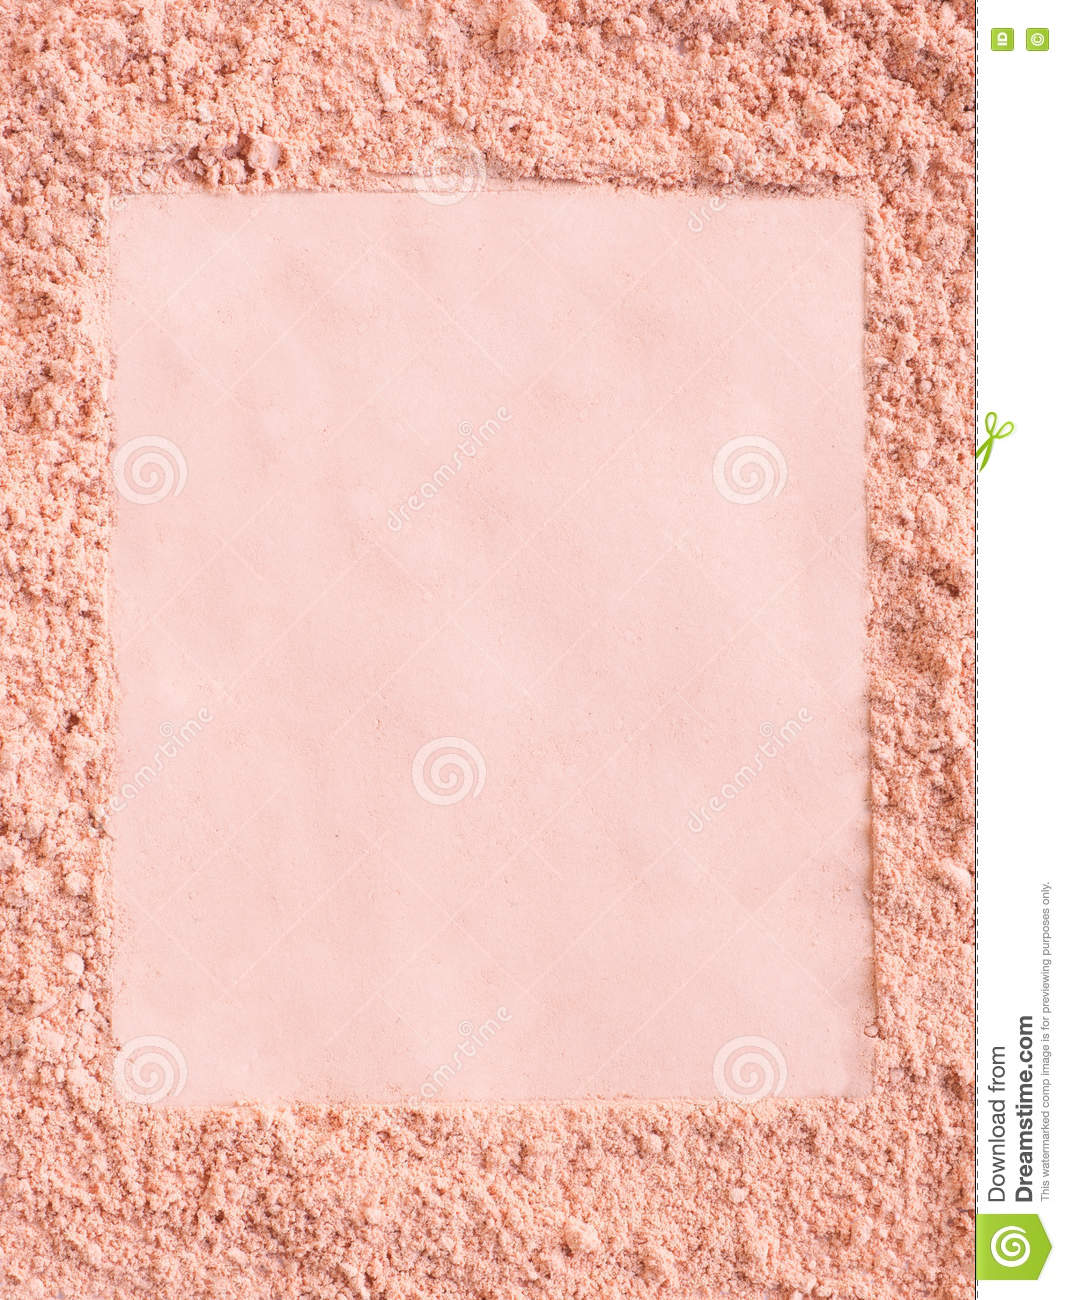 Extruded frame in a foundation cosmetic powder